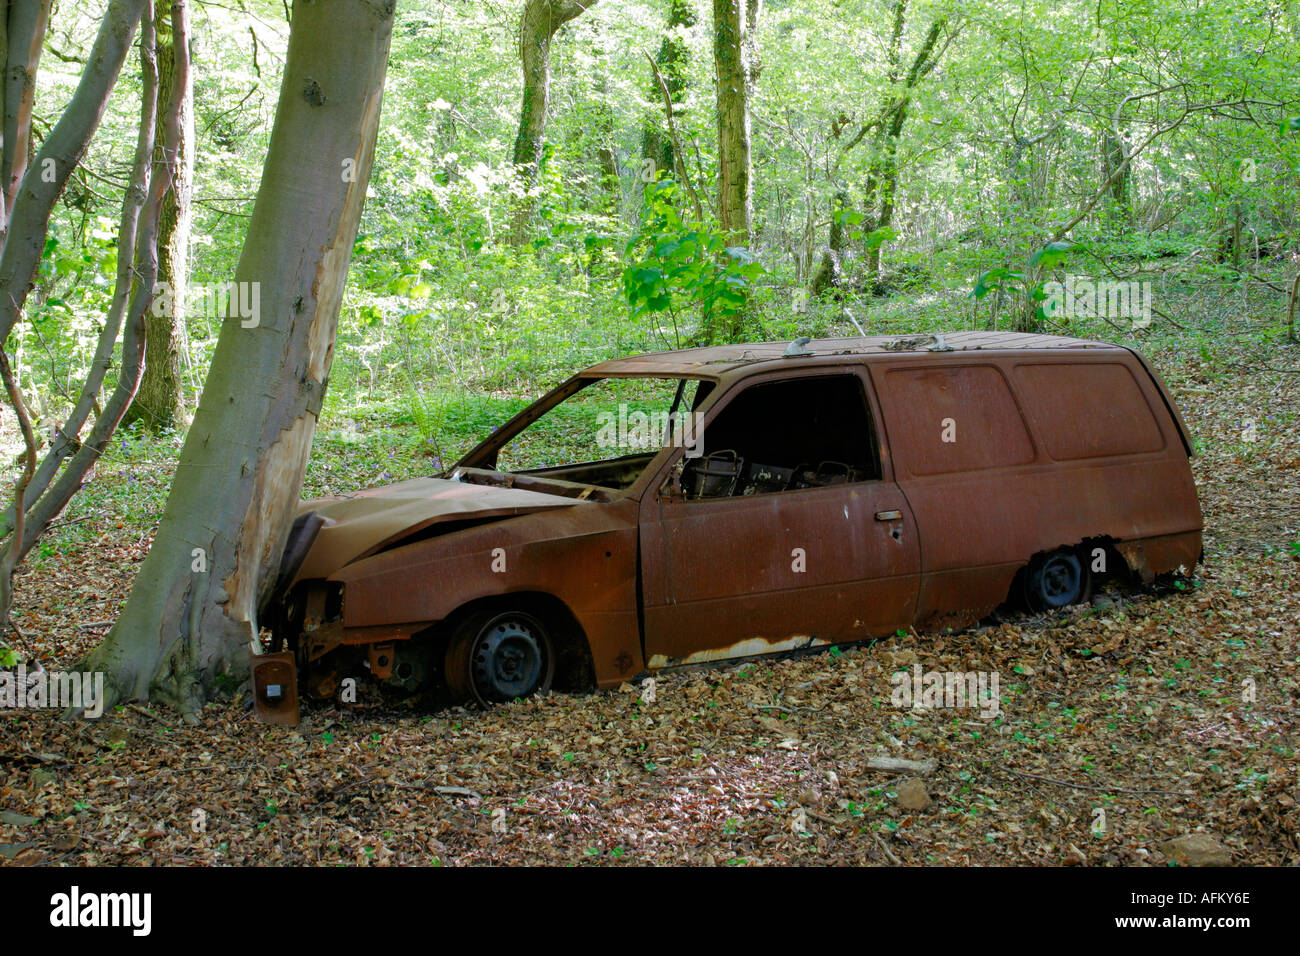 Rusted Car Abandoned In Woods Stock Photo 4562797 Alamy